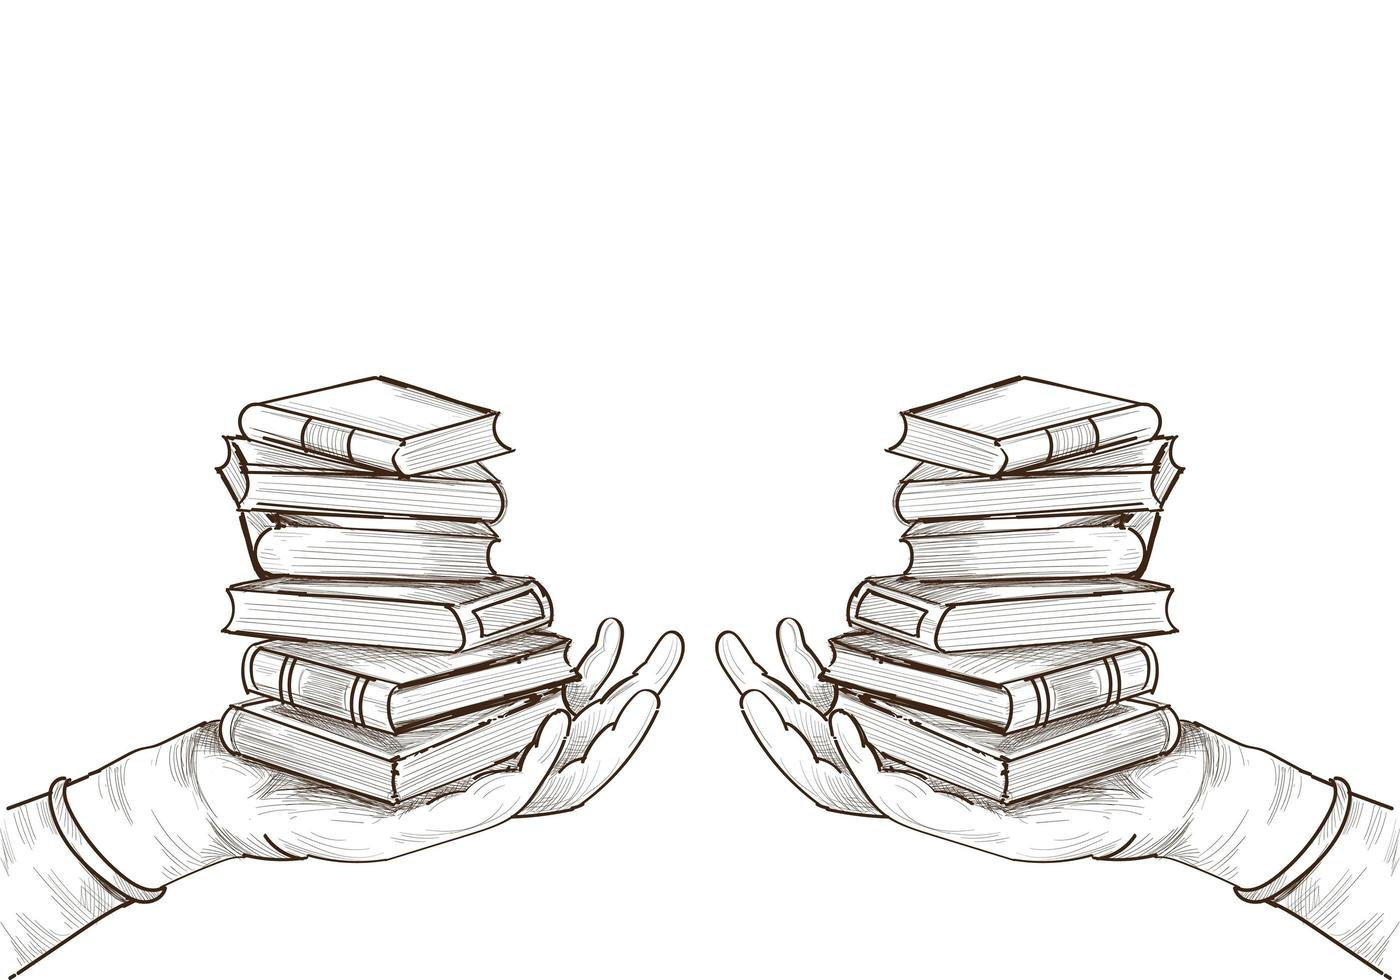 Hand Drawn Education Book Stacks Sketch vector